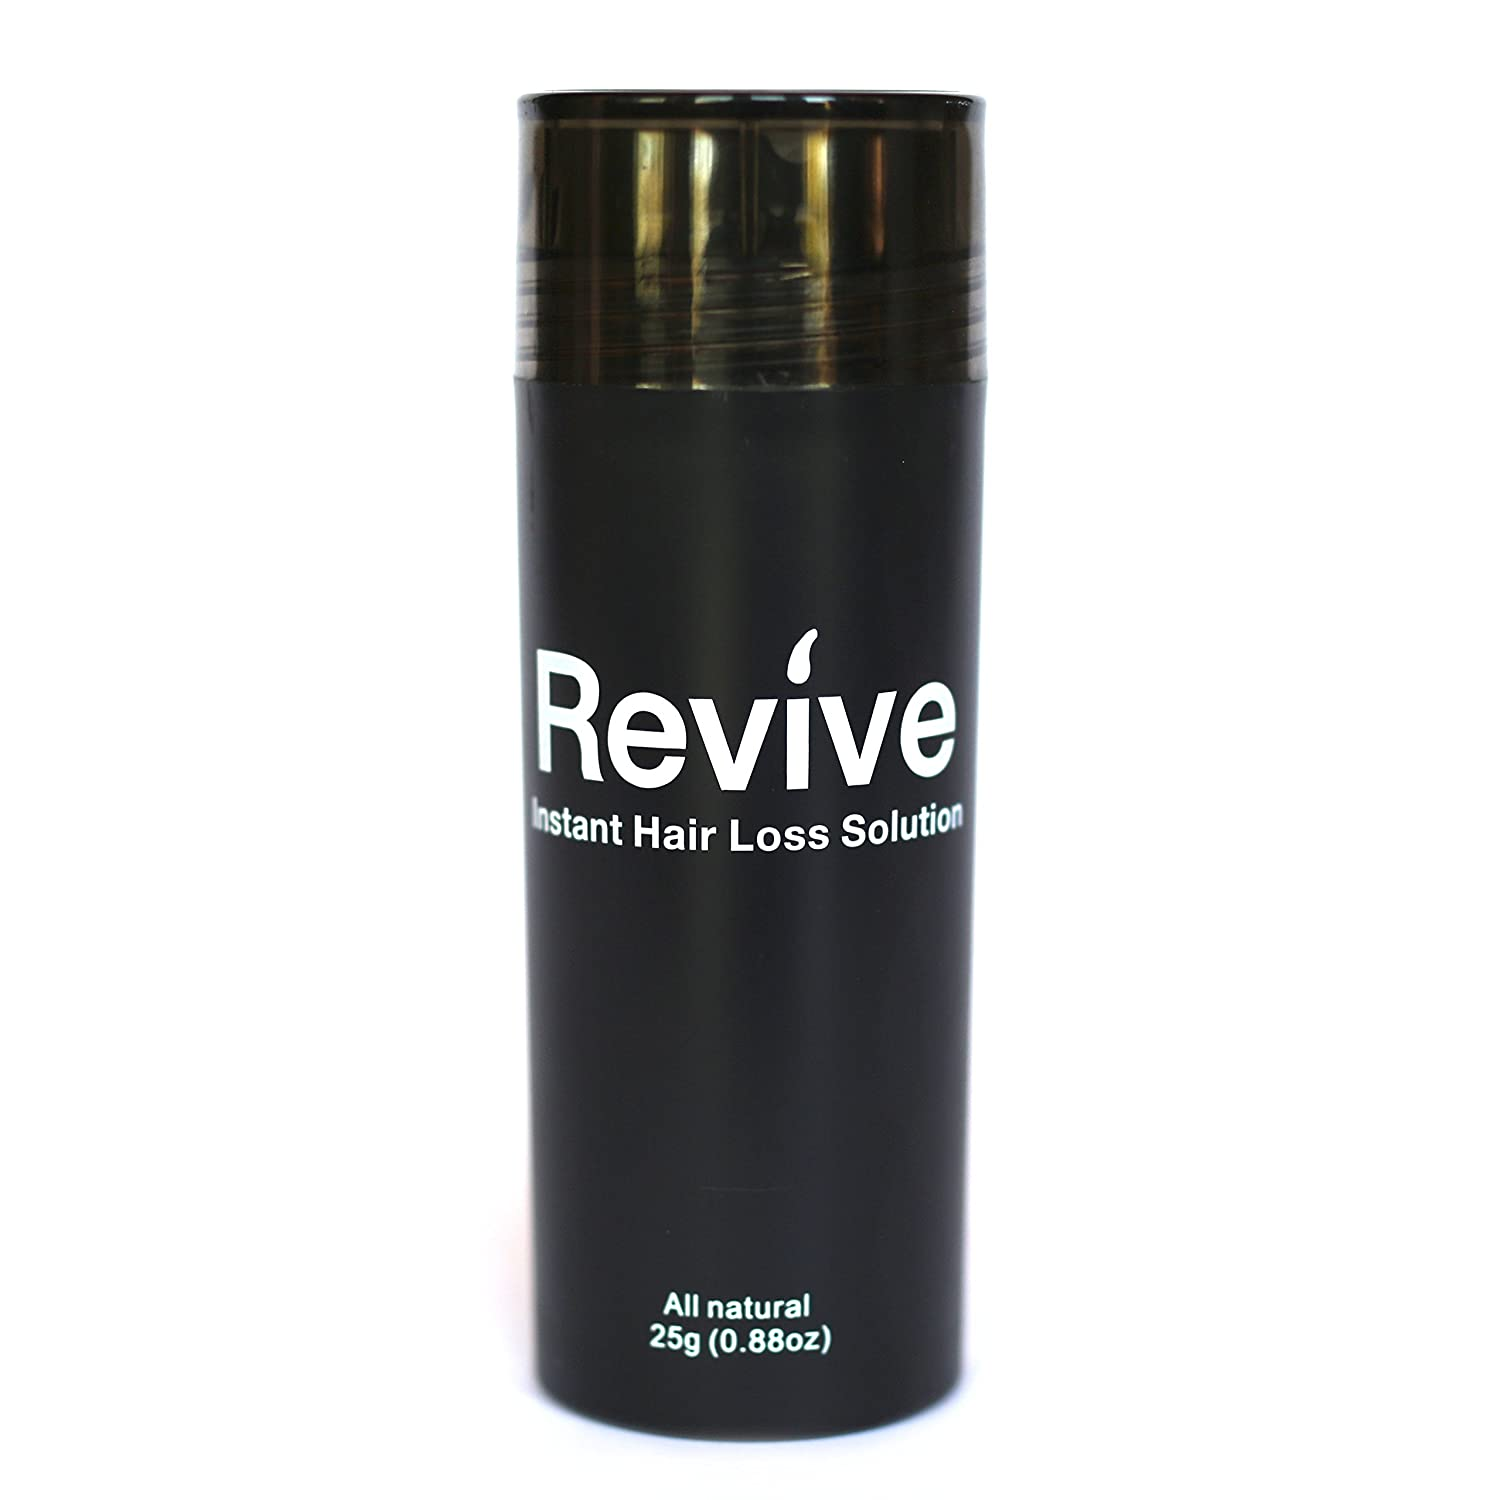 Revive 25 Gram Bottle Hair Fibers Instant Hair Loss Solution, Color: Dark Brown Capital Collective Inc